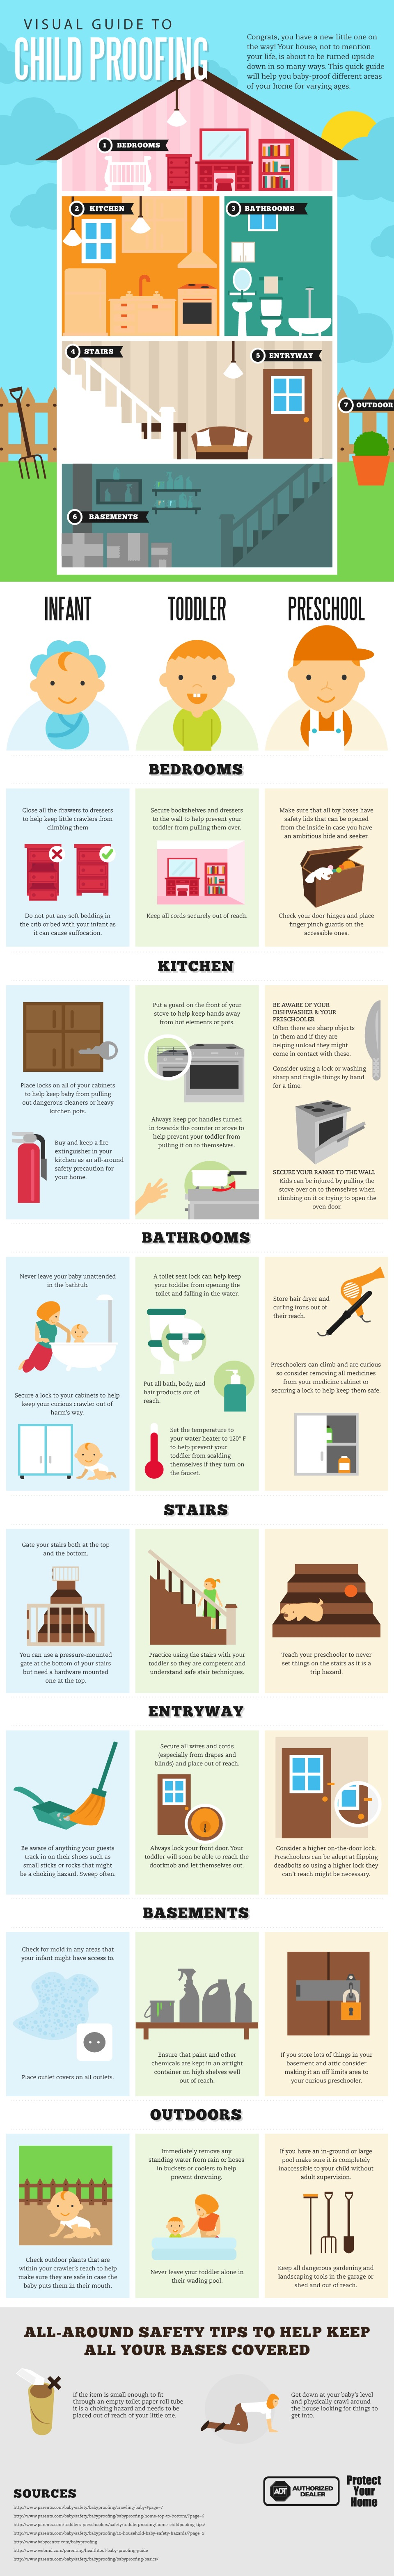 Guide to Child Proofing Your Home